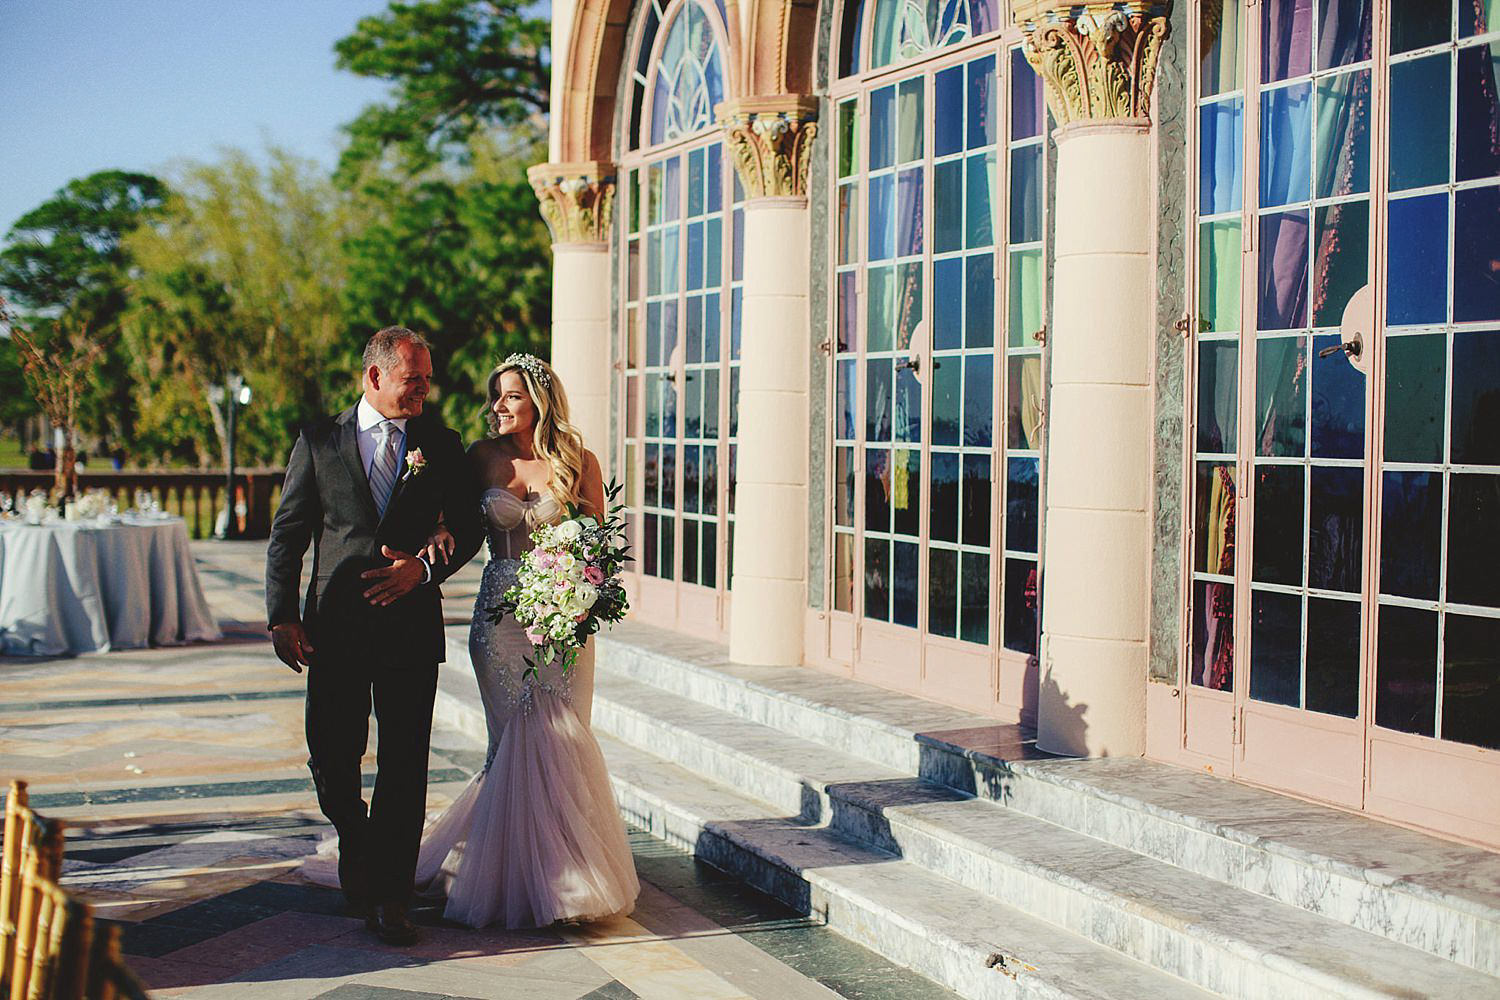 editorial ringling wedding: father walking bride down aisle